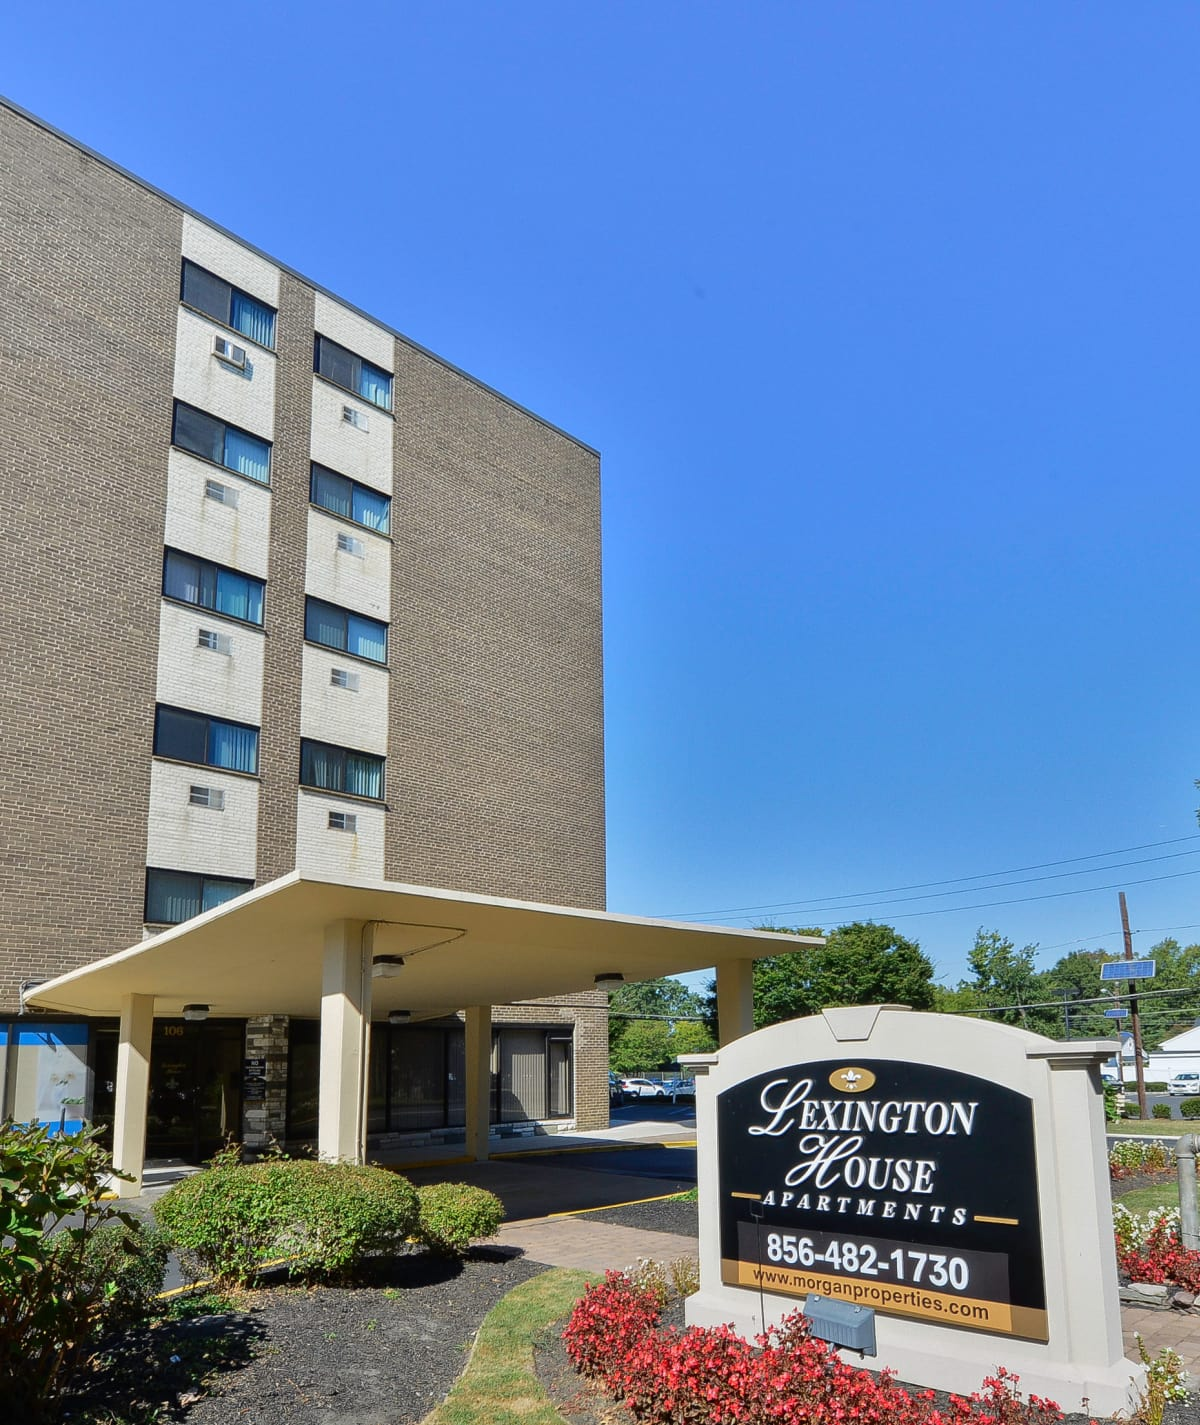 Pet Friendly Apartments Nj: Apartments In Cherry Hill, NJ On Chestnut St